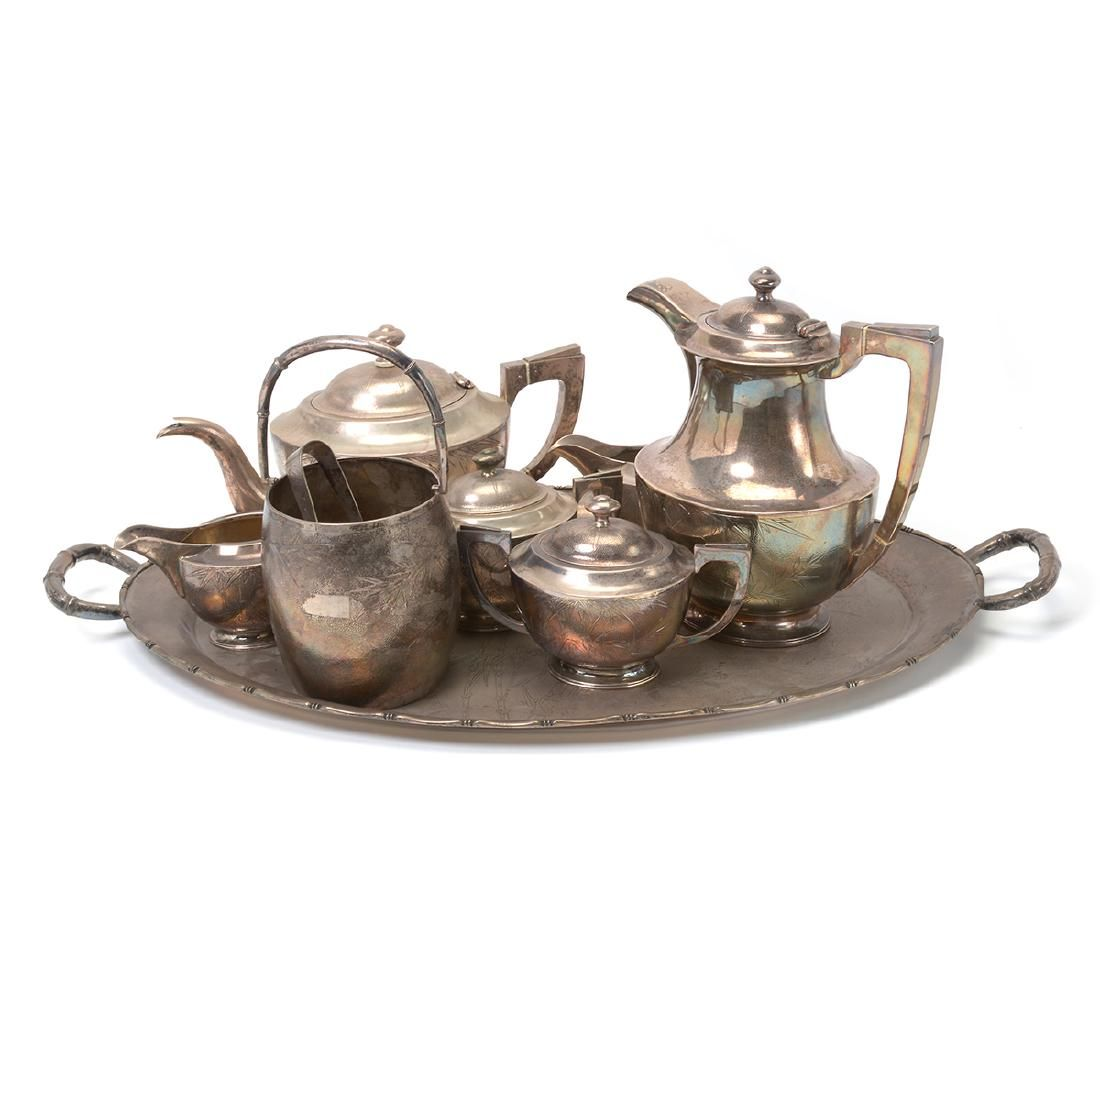 Chinese Export Sterling Silver Tea Service